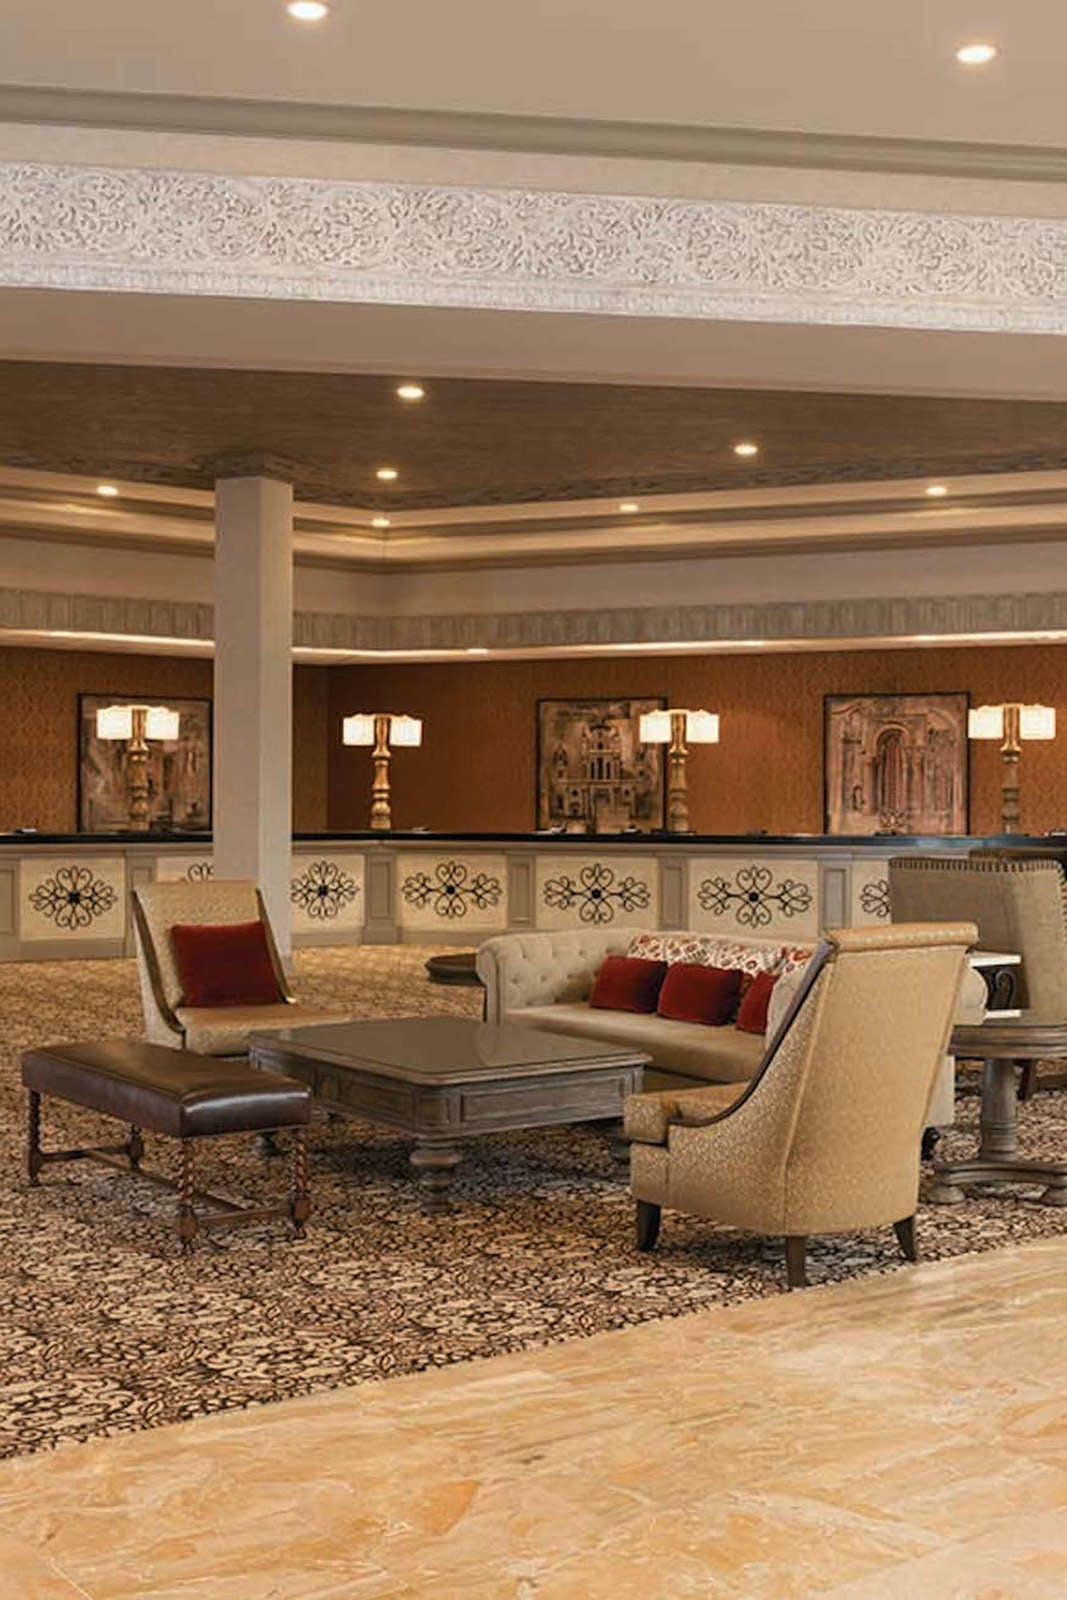 Caribe Royale All-Suite Hotel